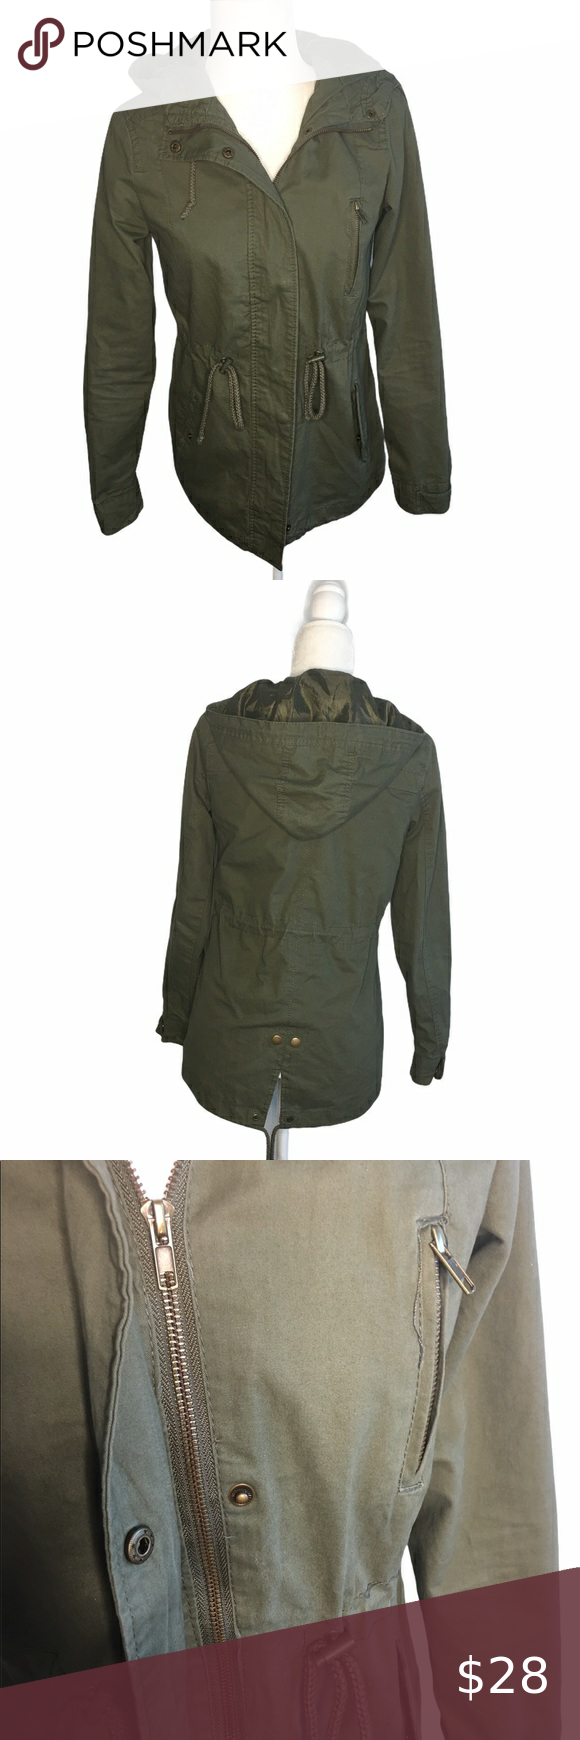 Ambiance Outerwear Jacket In 2021 Faux Leather Bomber Jacket Outerwear Jackets Anorak Utility Jacket [ 1740 x 580 Pixel ]